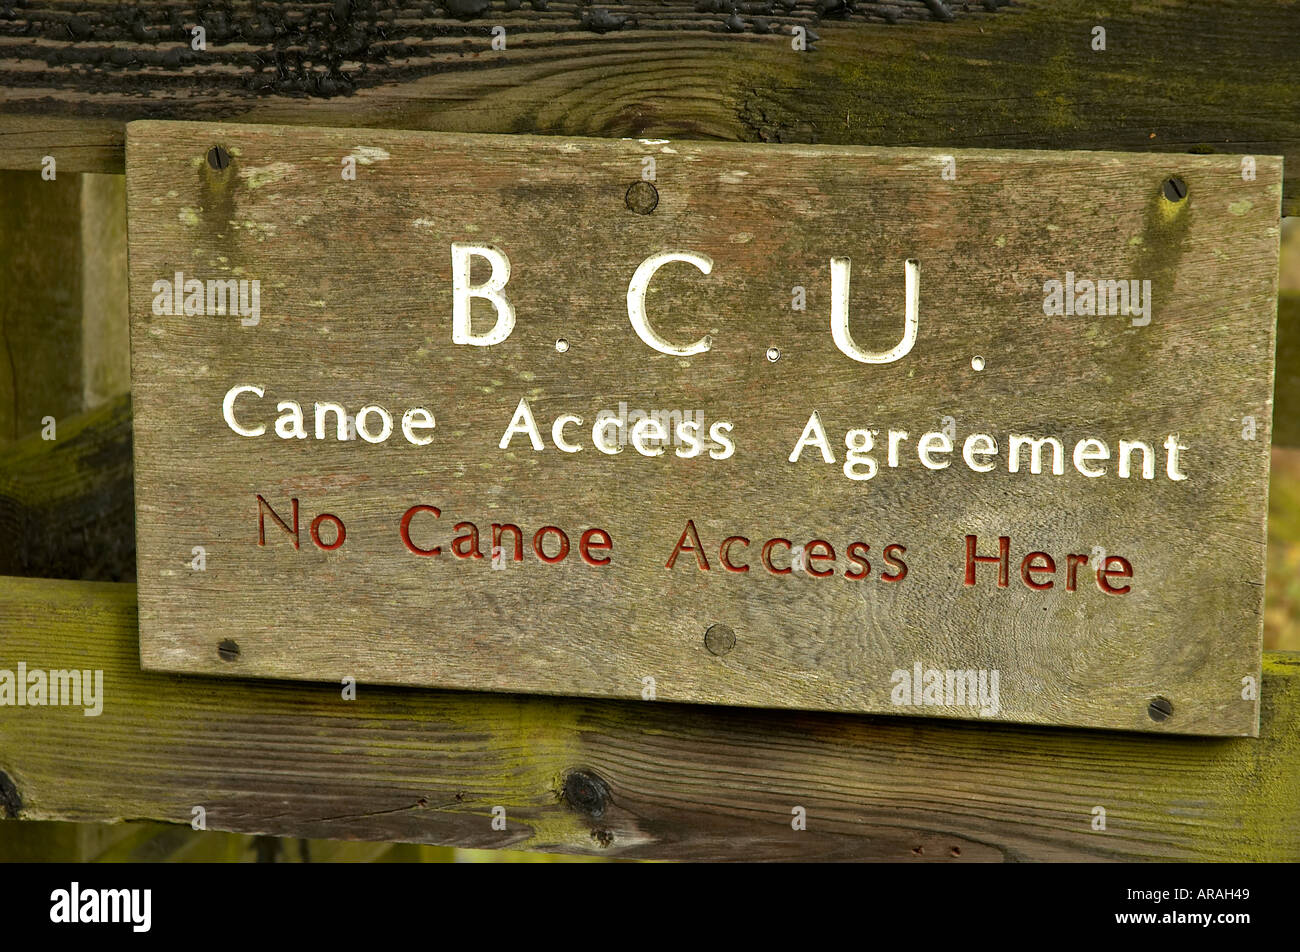 Sign On The Gate Informs People Of The Restriction On Canoe Access